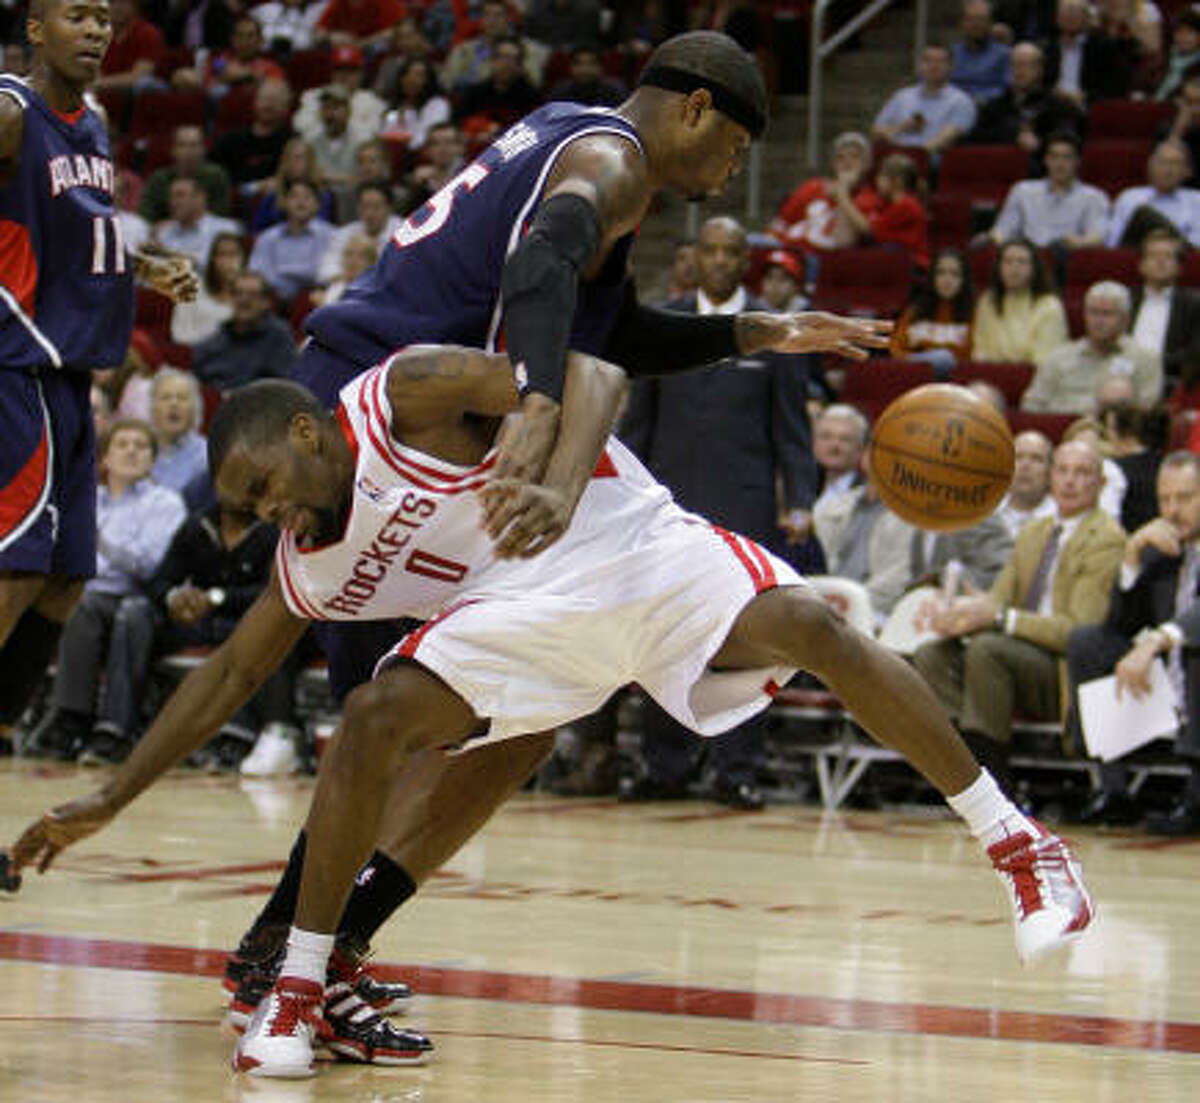 Josh Smith drives past Aaron Brooks during the fourth quarter. Smith led all scorers with 22 points.